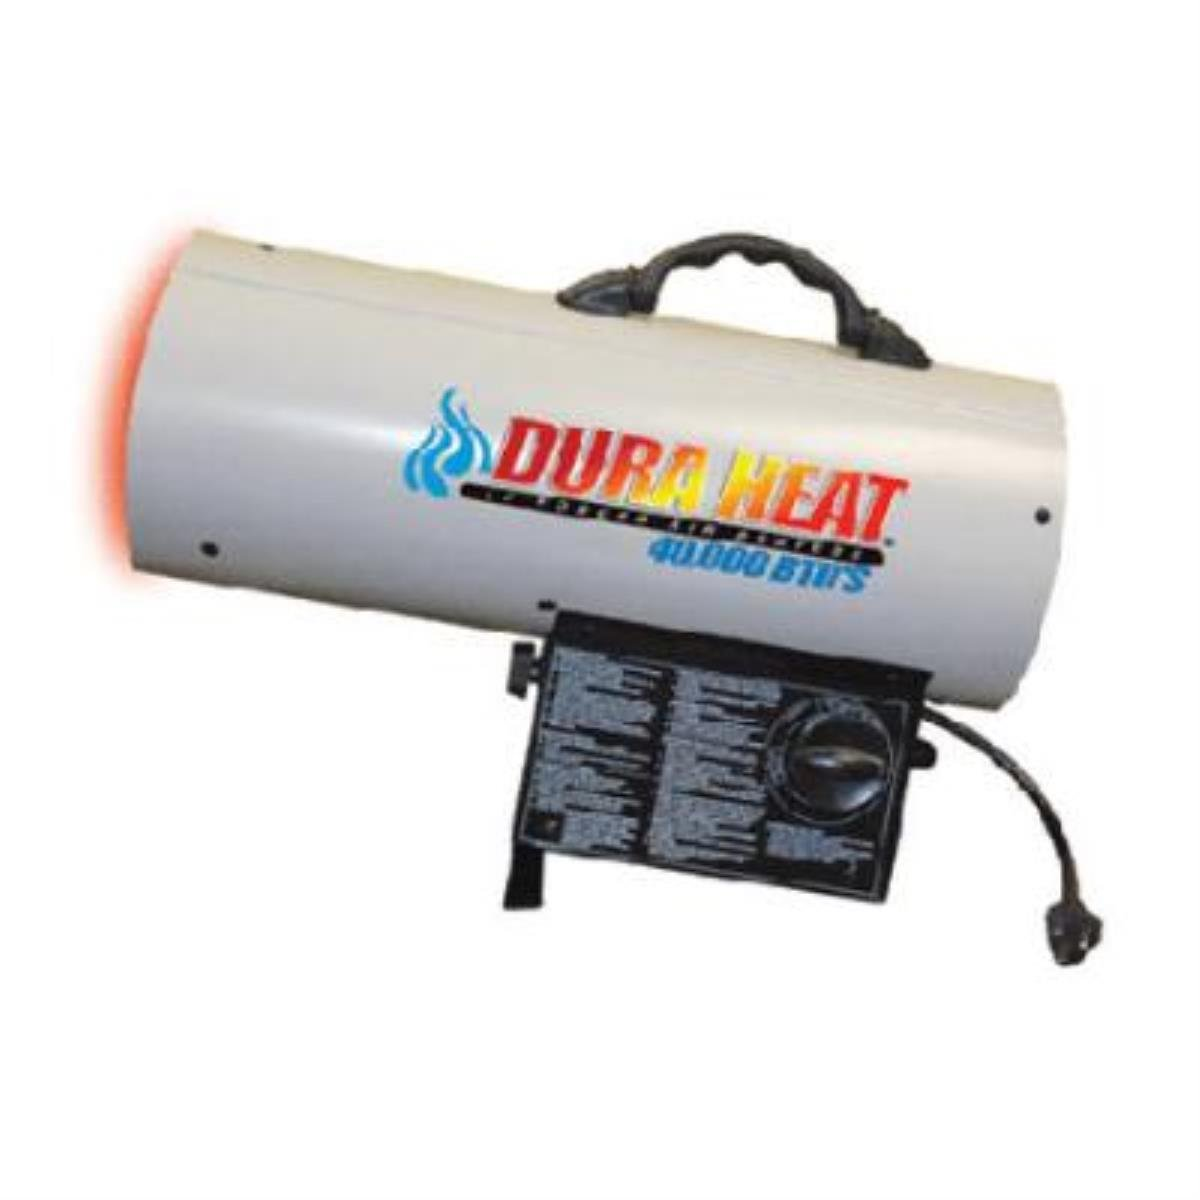 Forced Air Propane Heater, 40,000 Btu, Heats Up To 900 Square Feet, With Lp Regulator